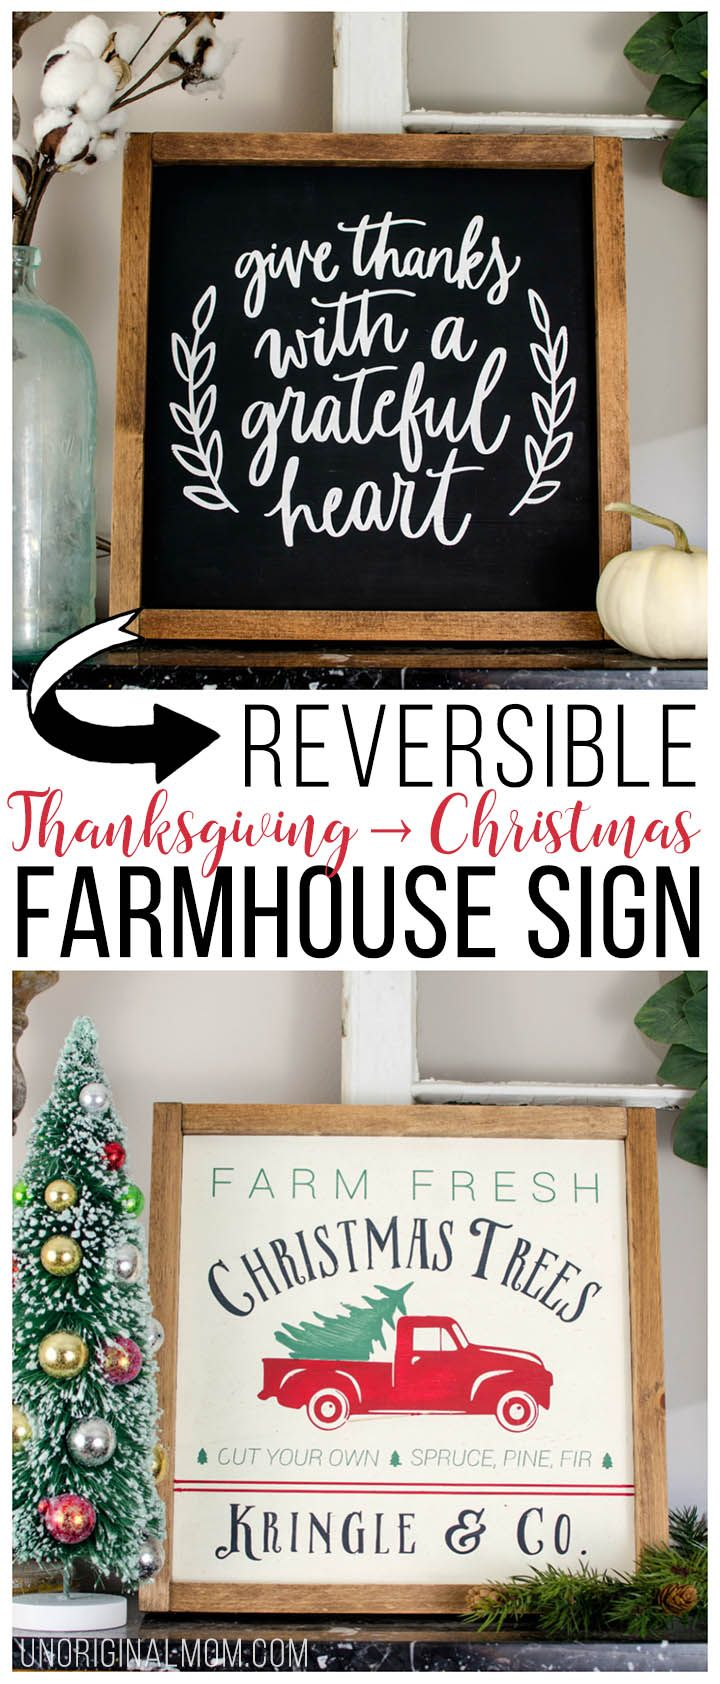 Reversible Thanksgiving and Christmas Farmhouse Sign - unOriginal Mom